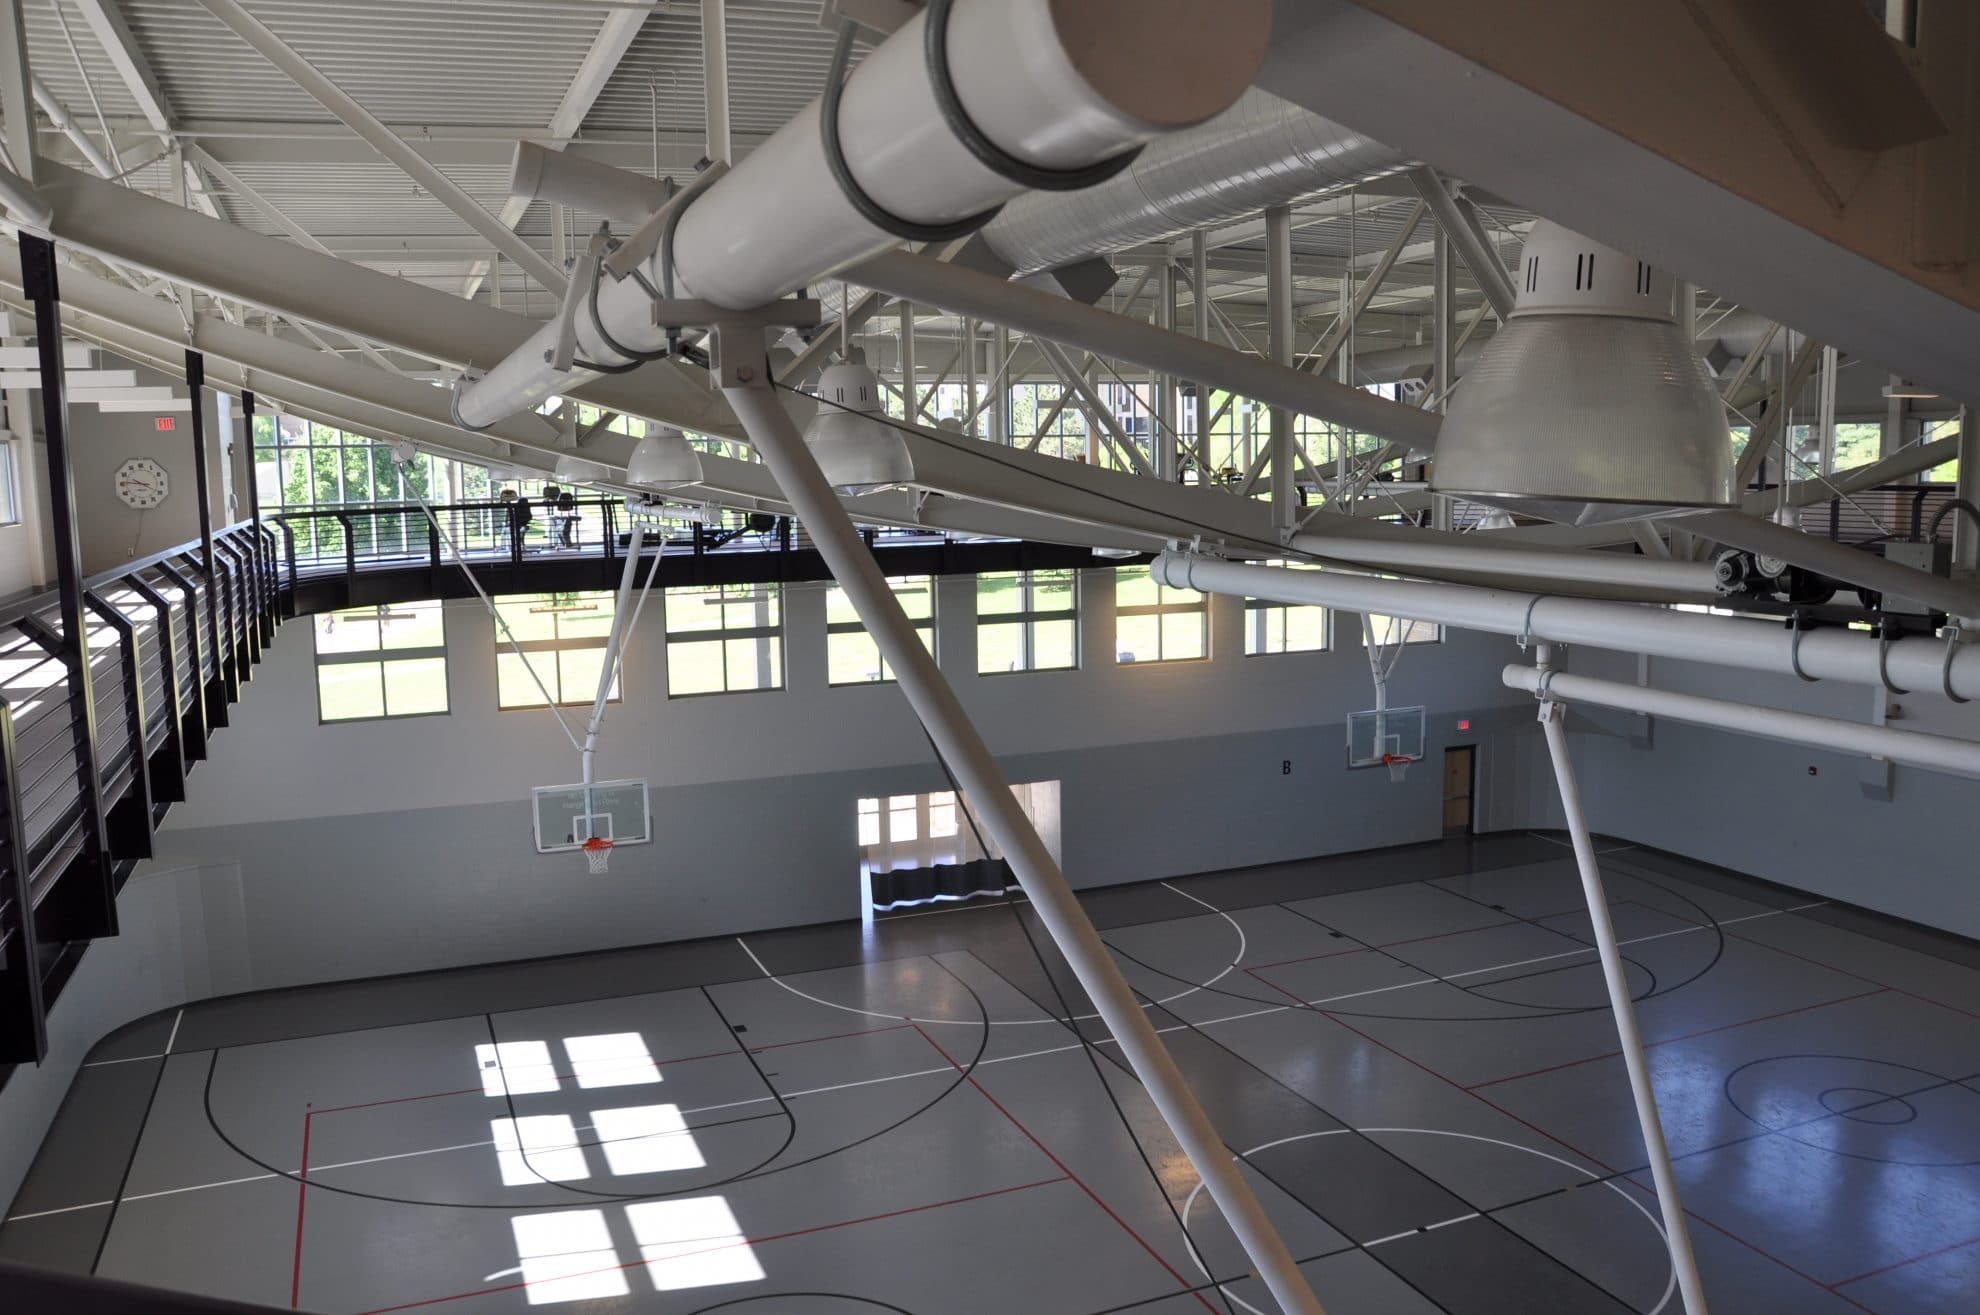 Upper view of gym